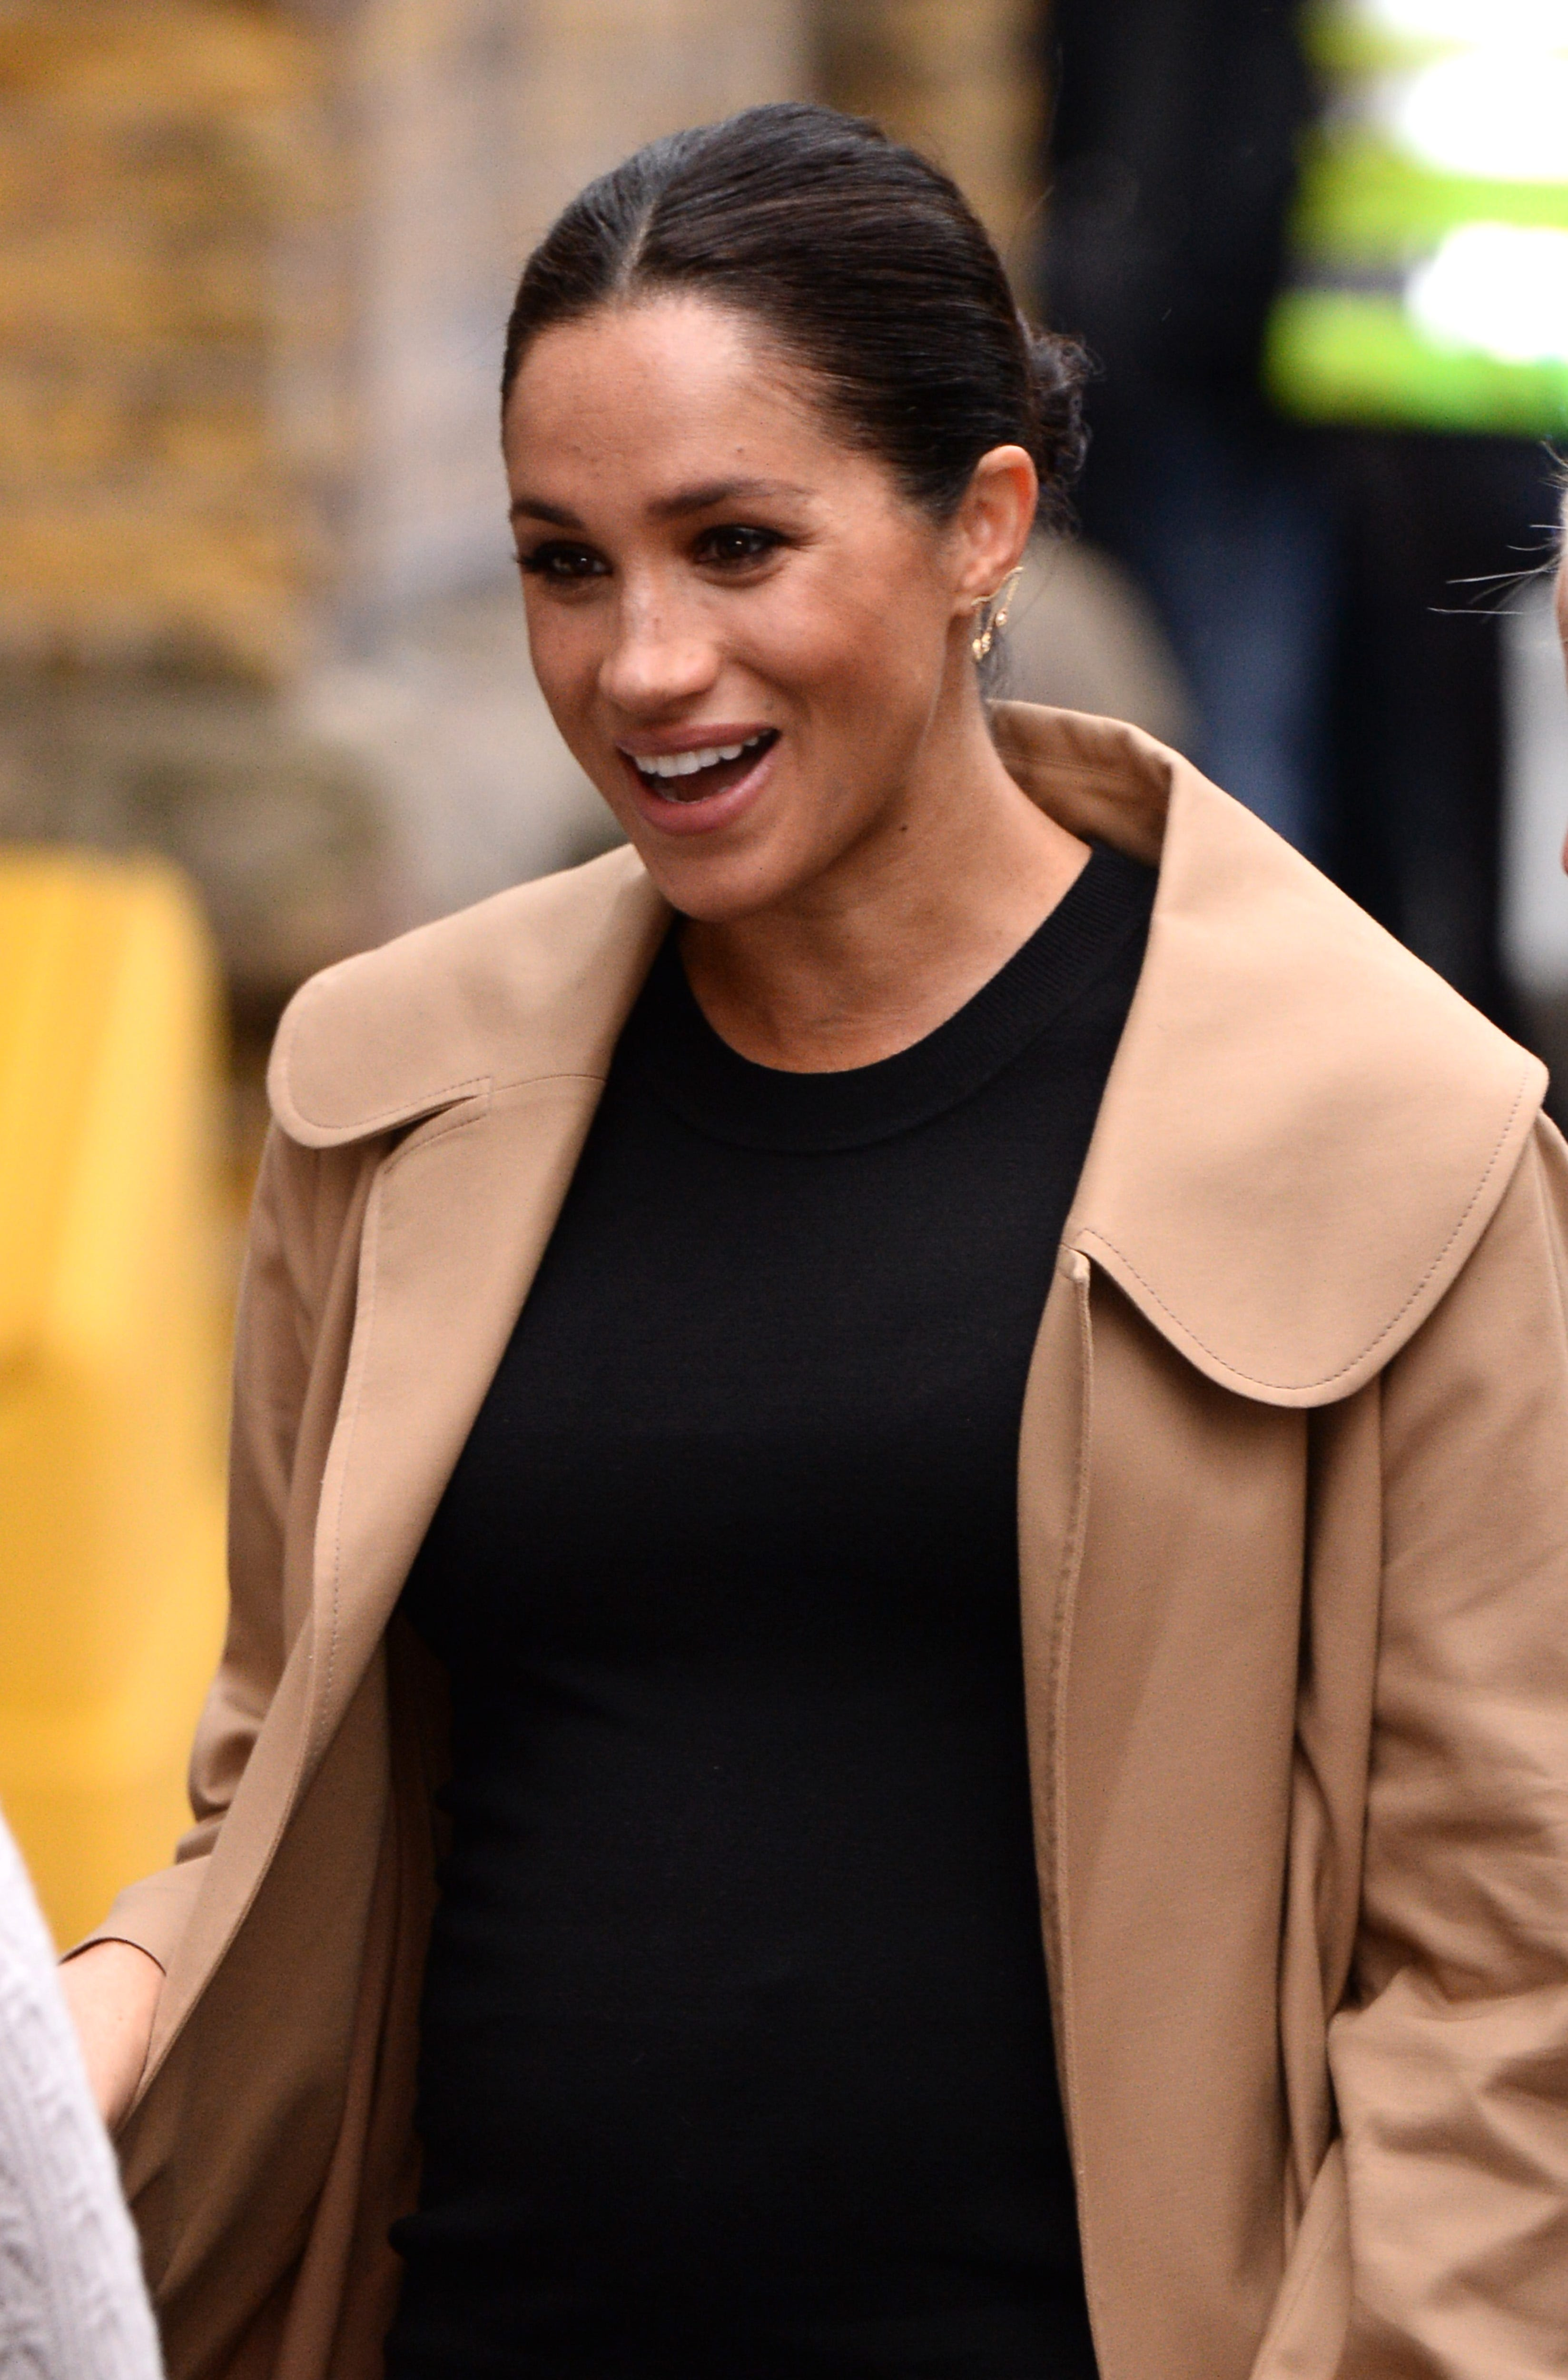 289dae6d3938aa http://www.usatoday.com/picture-gallery/life/2018/06/11/duchess ...